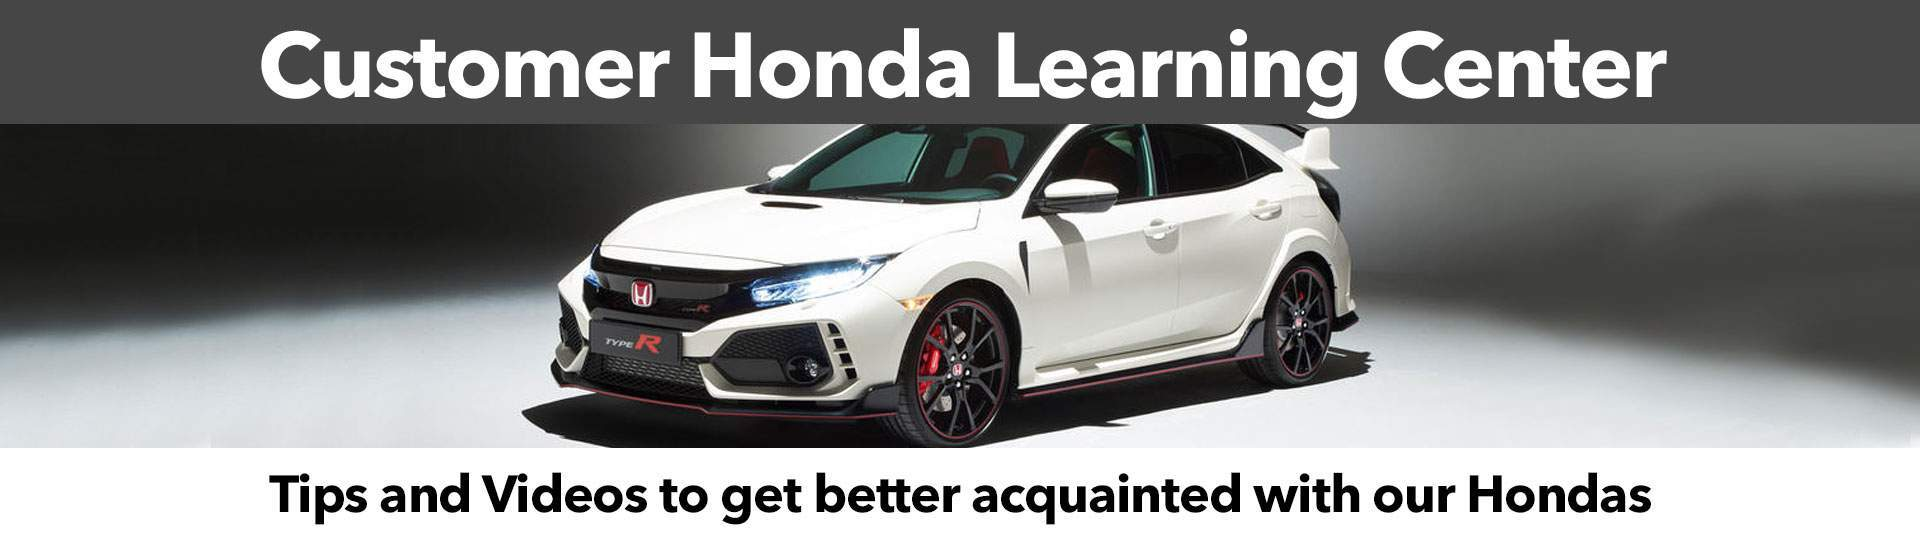 Customer Honda Learning Center